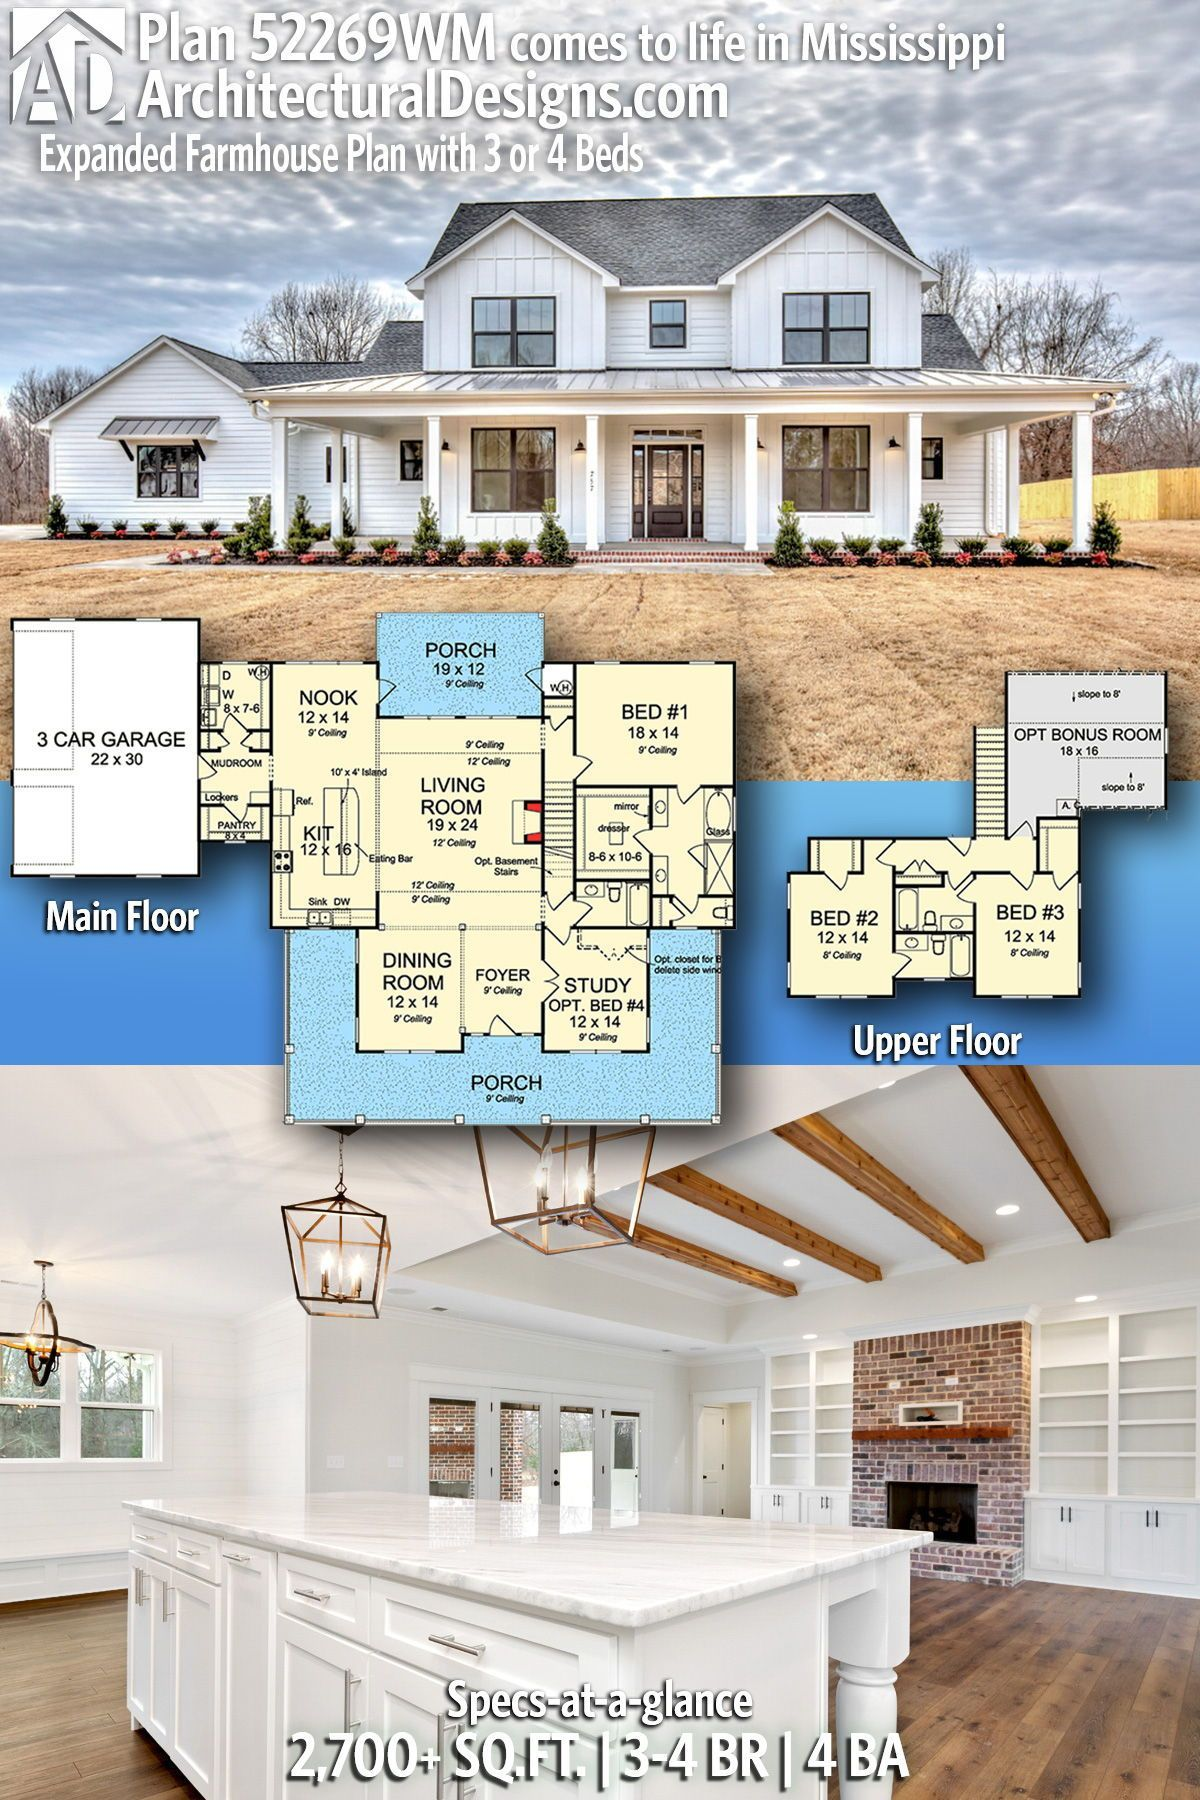 Plan 52269WM: Expanded Farmhouse Plan with 3 or 4